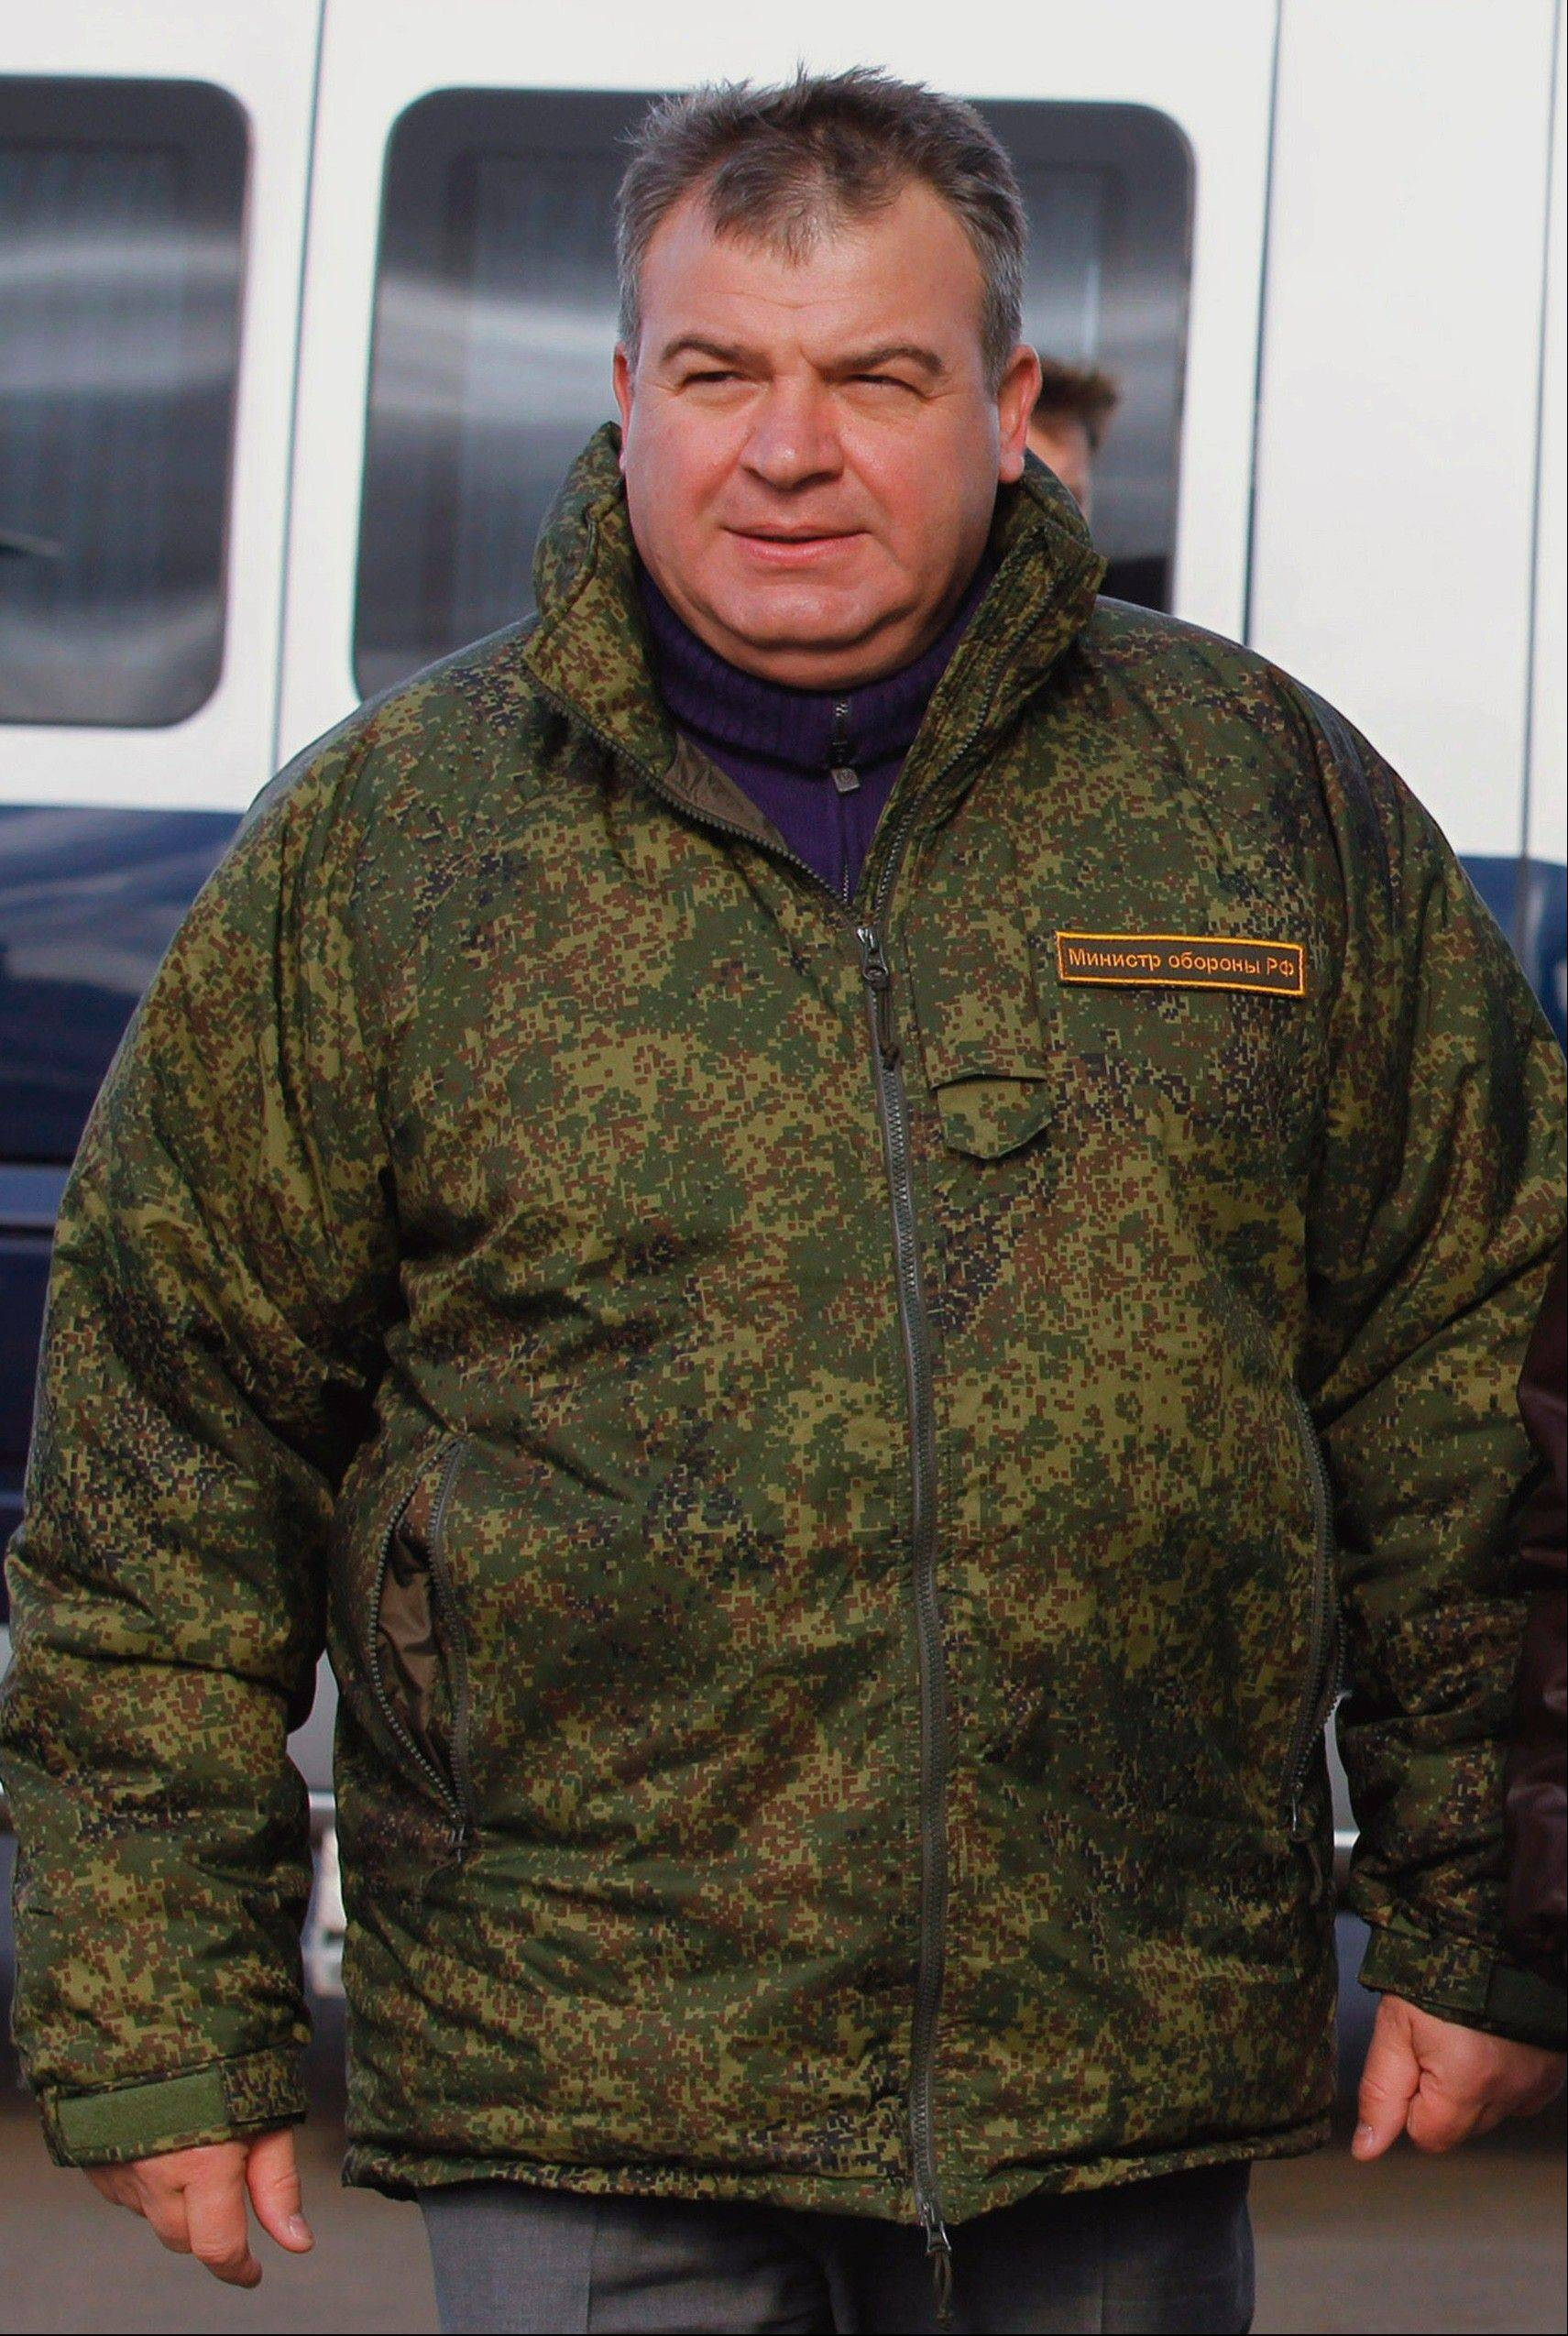 In this Tuesday, Sept. 27, 2011 file photo then Russian Defense Minister Anatoly Serdyukov walks during military maneuvers in the Chelyabinsk region of Russia. Russia�s main investigative agency filed charges against the former defense minister Thursday, Nov. 28, 2013, accusing him of using servicemen and government funds to build a road to a vacation home and do landscaping work on the property. If convicted, Serdyukov could face up to five years in prison.